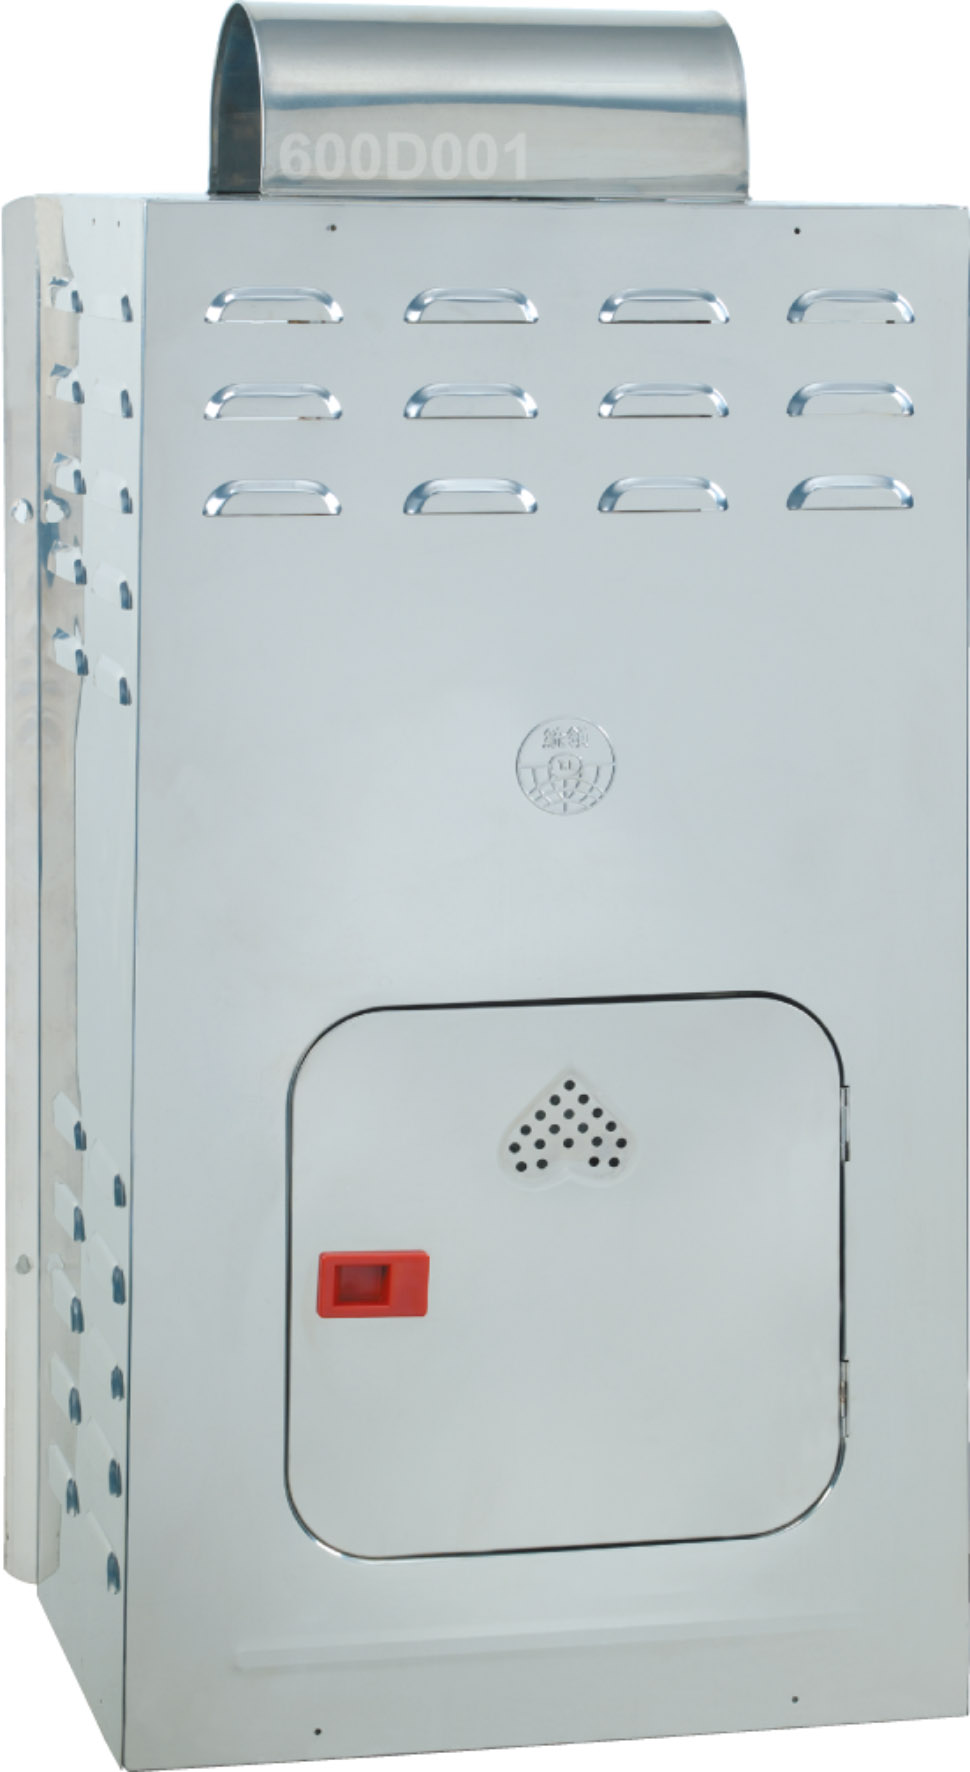 Stainless steel housing-G98-type water heater